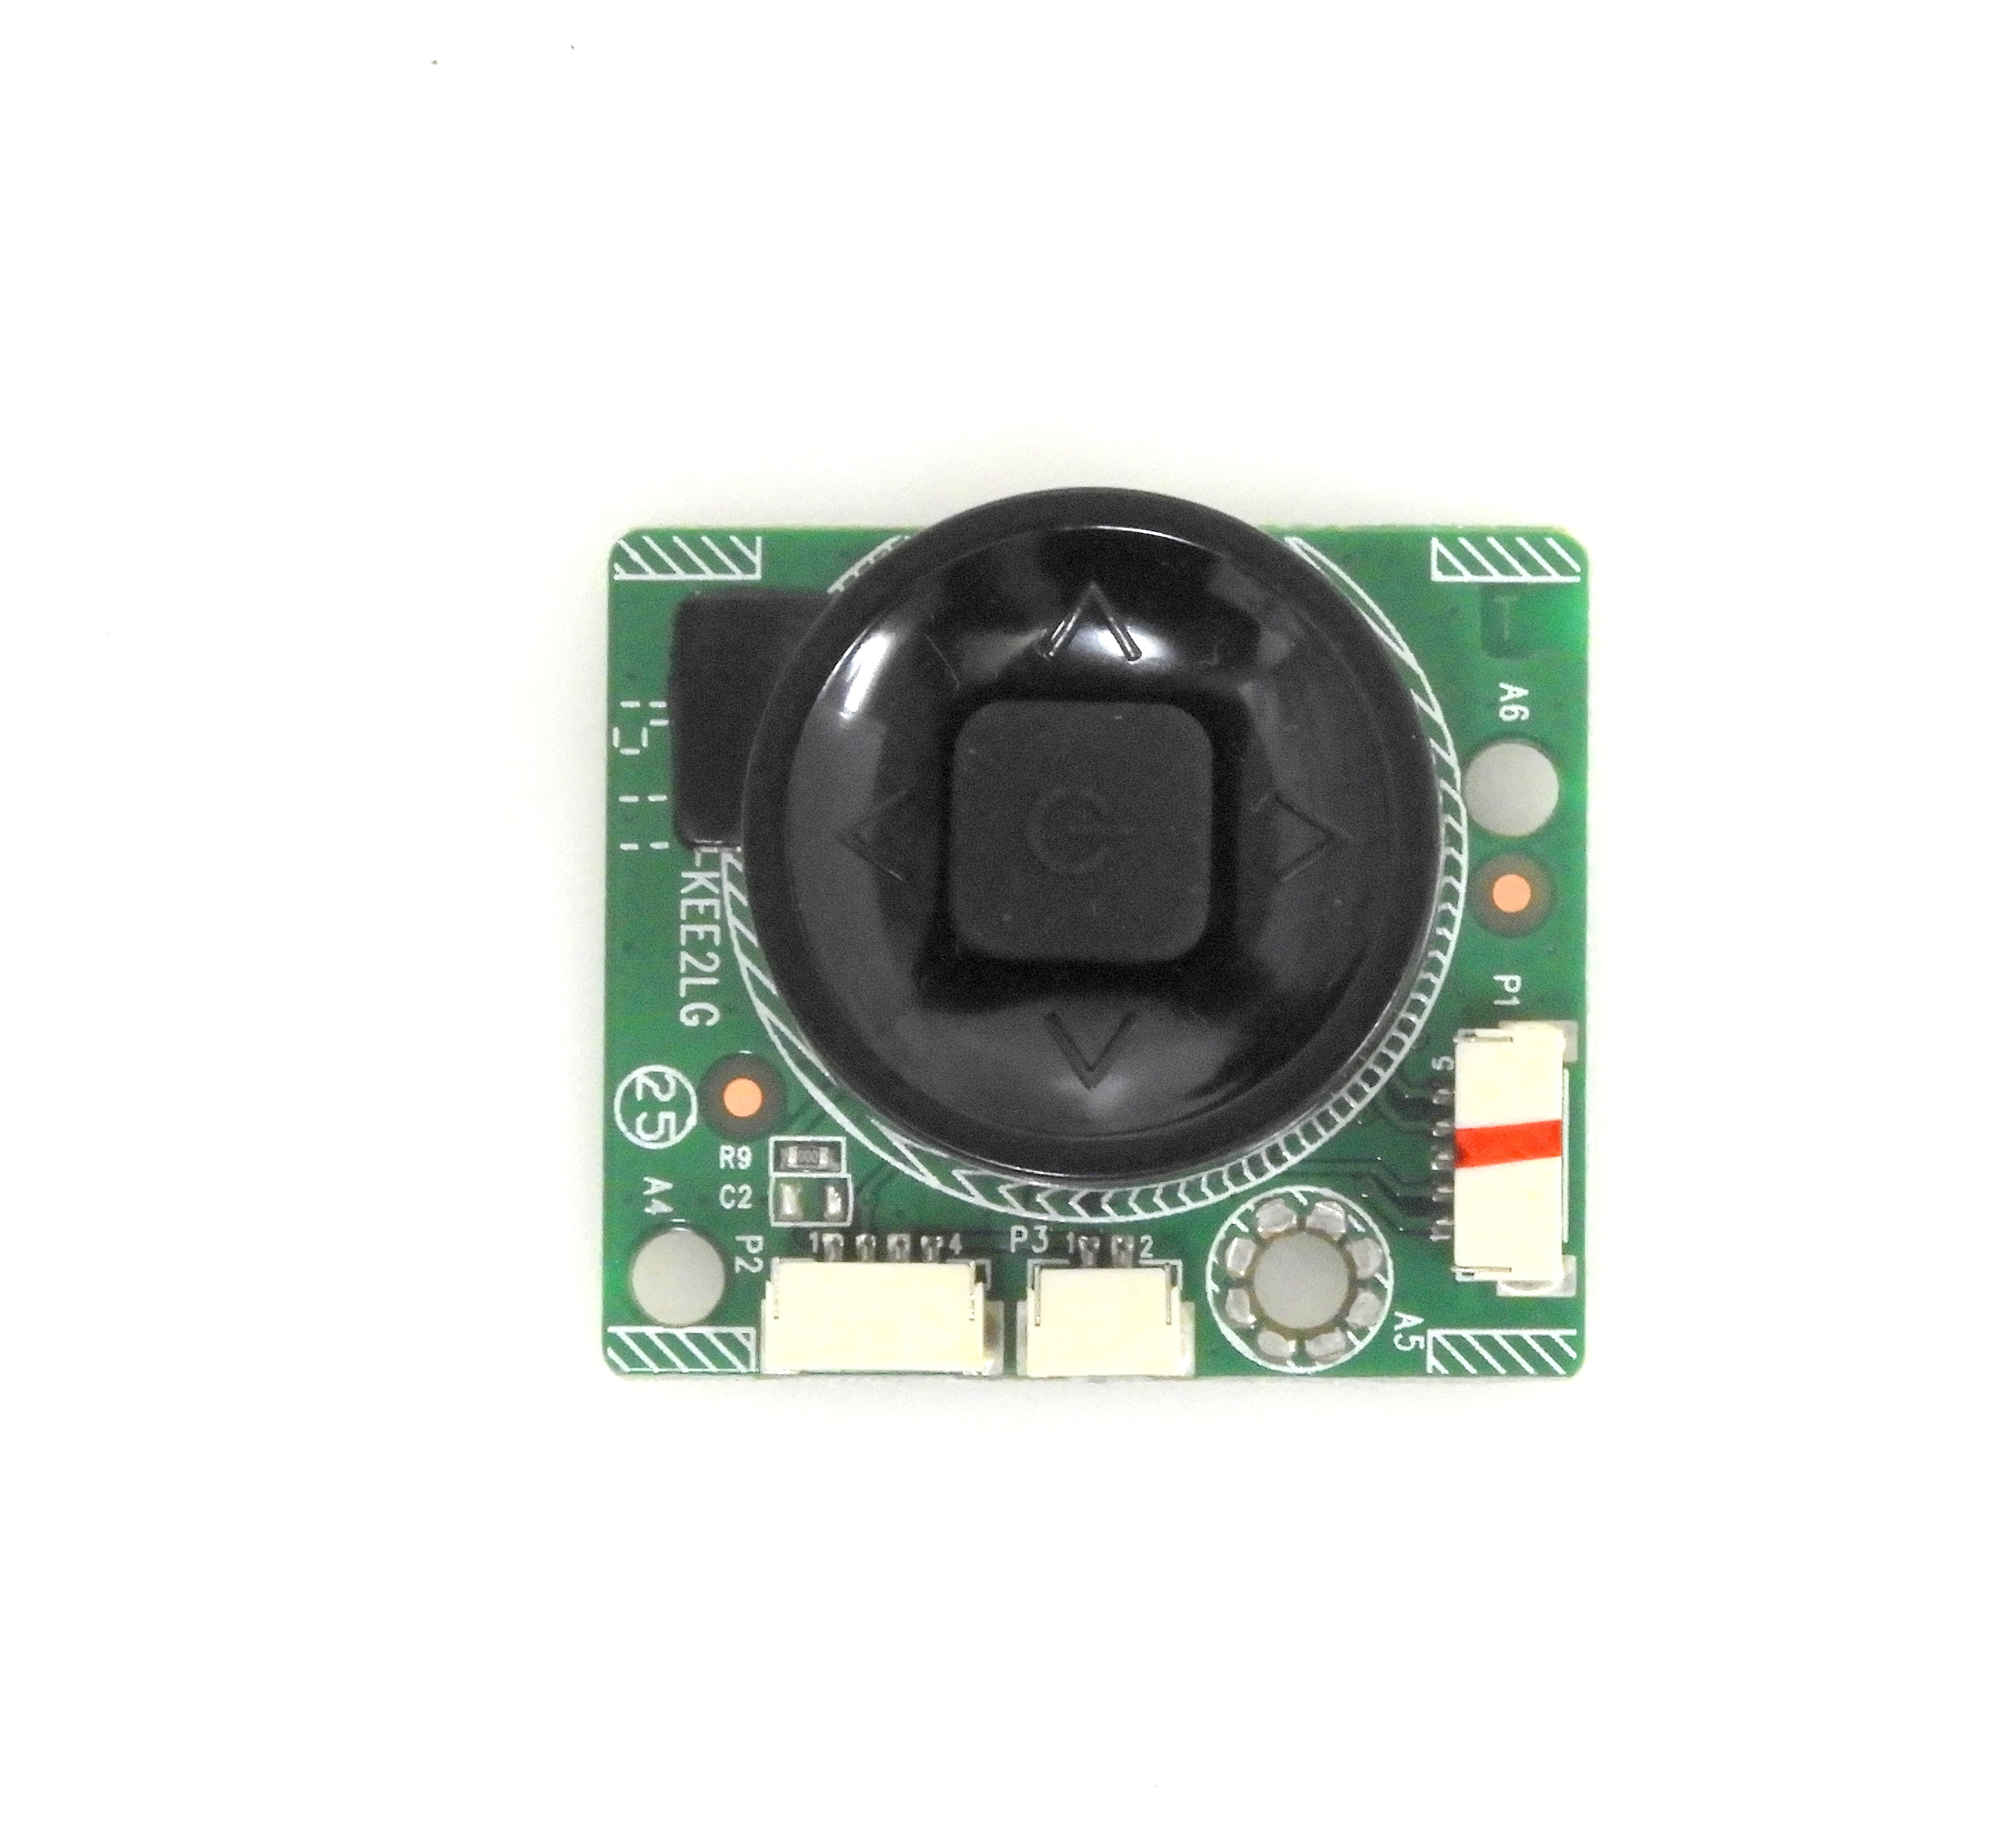 TCL 55FS3700 Power Button Board 40-32S460-KEB2LG